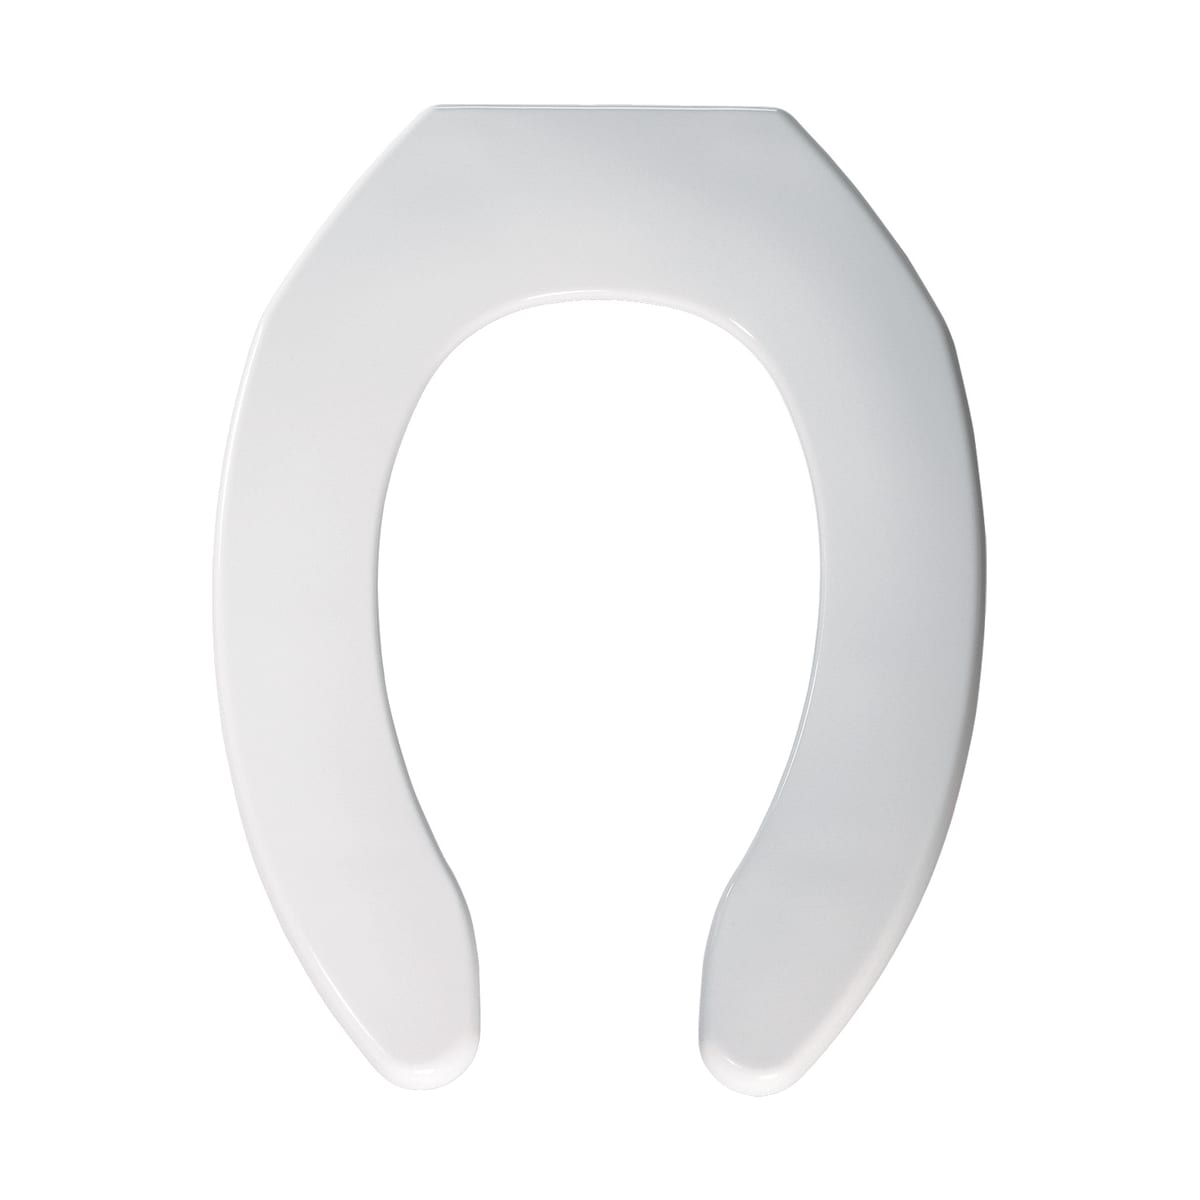 White BEMIS 1055 000 Commercial Heavy Duty Open Front Toilet Seat without Cover